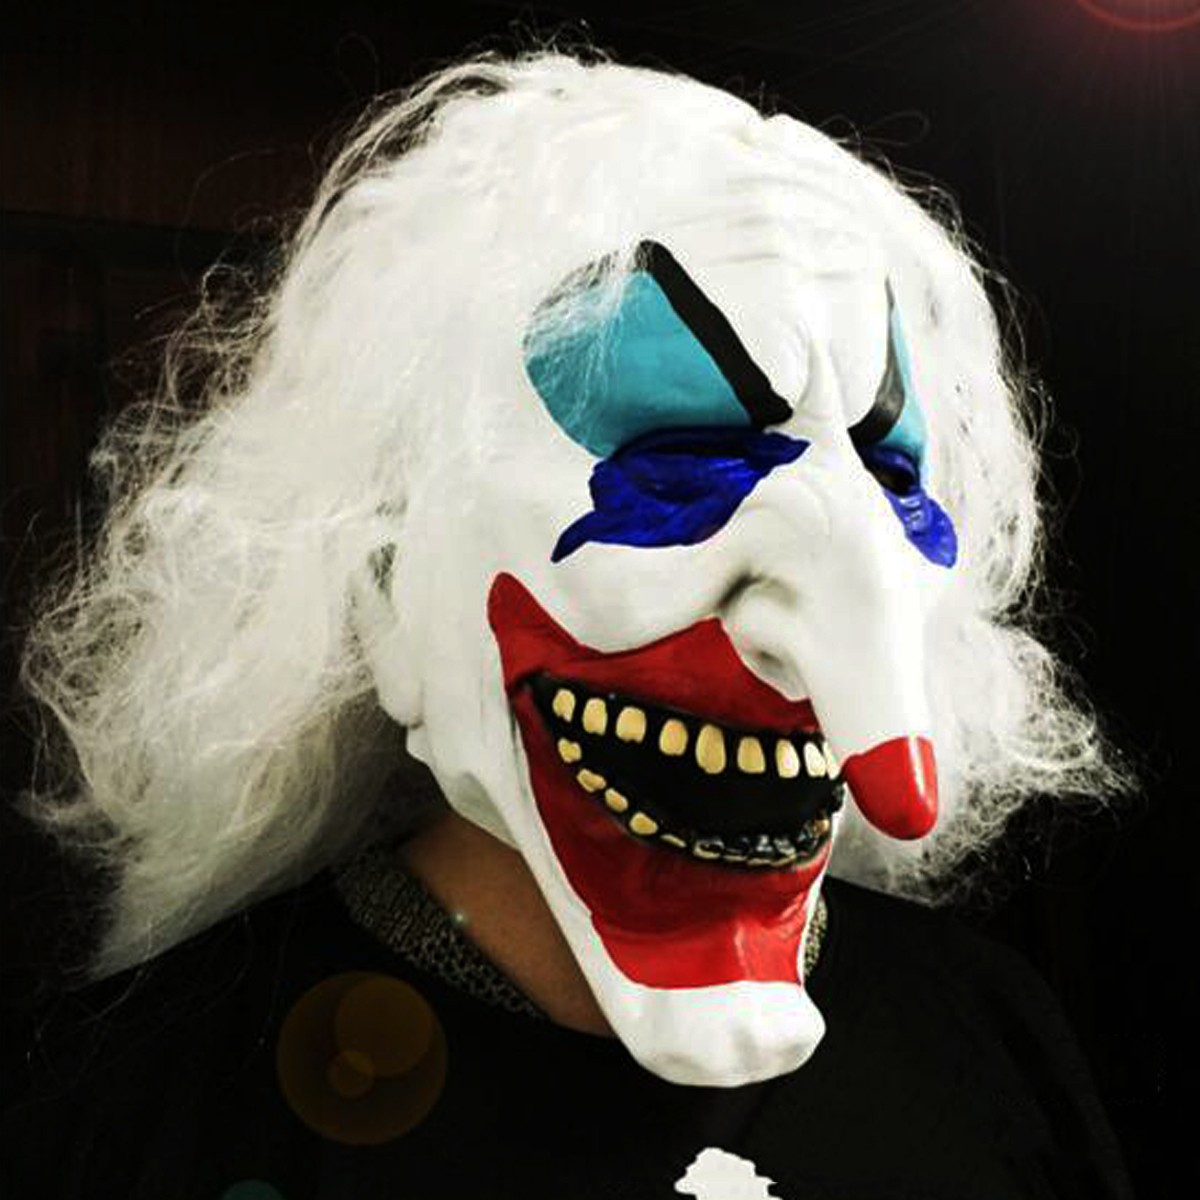 White Hair Clown Halloween Latex Mask Face Fancy Costume Party Creepy Dress Prop